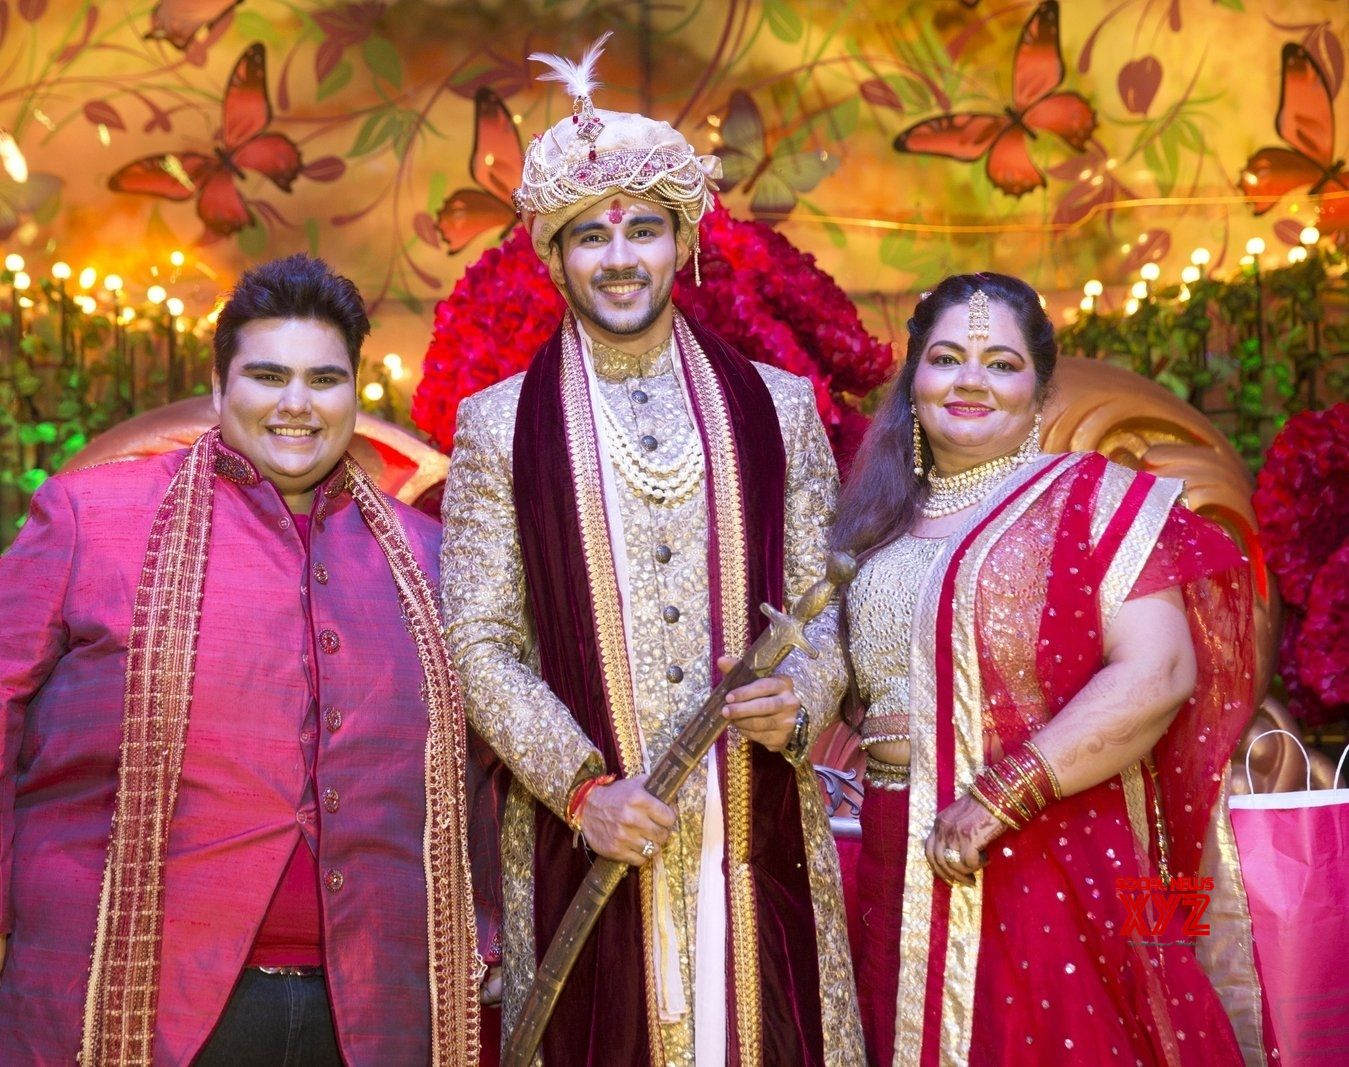 Veerey Ki Wedding.Sumeet Hopes To Get Noticed In Veerey Ki Wedding Social News Xyz